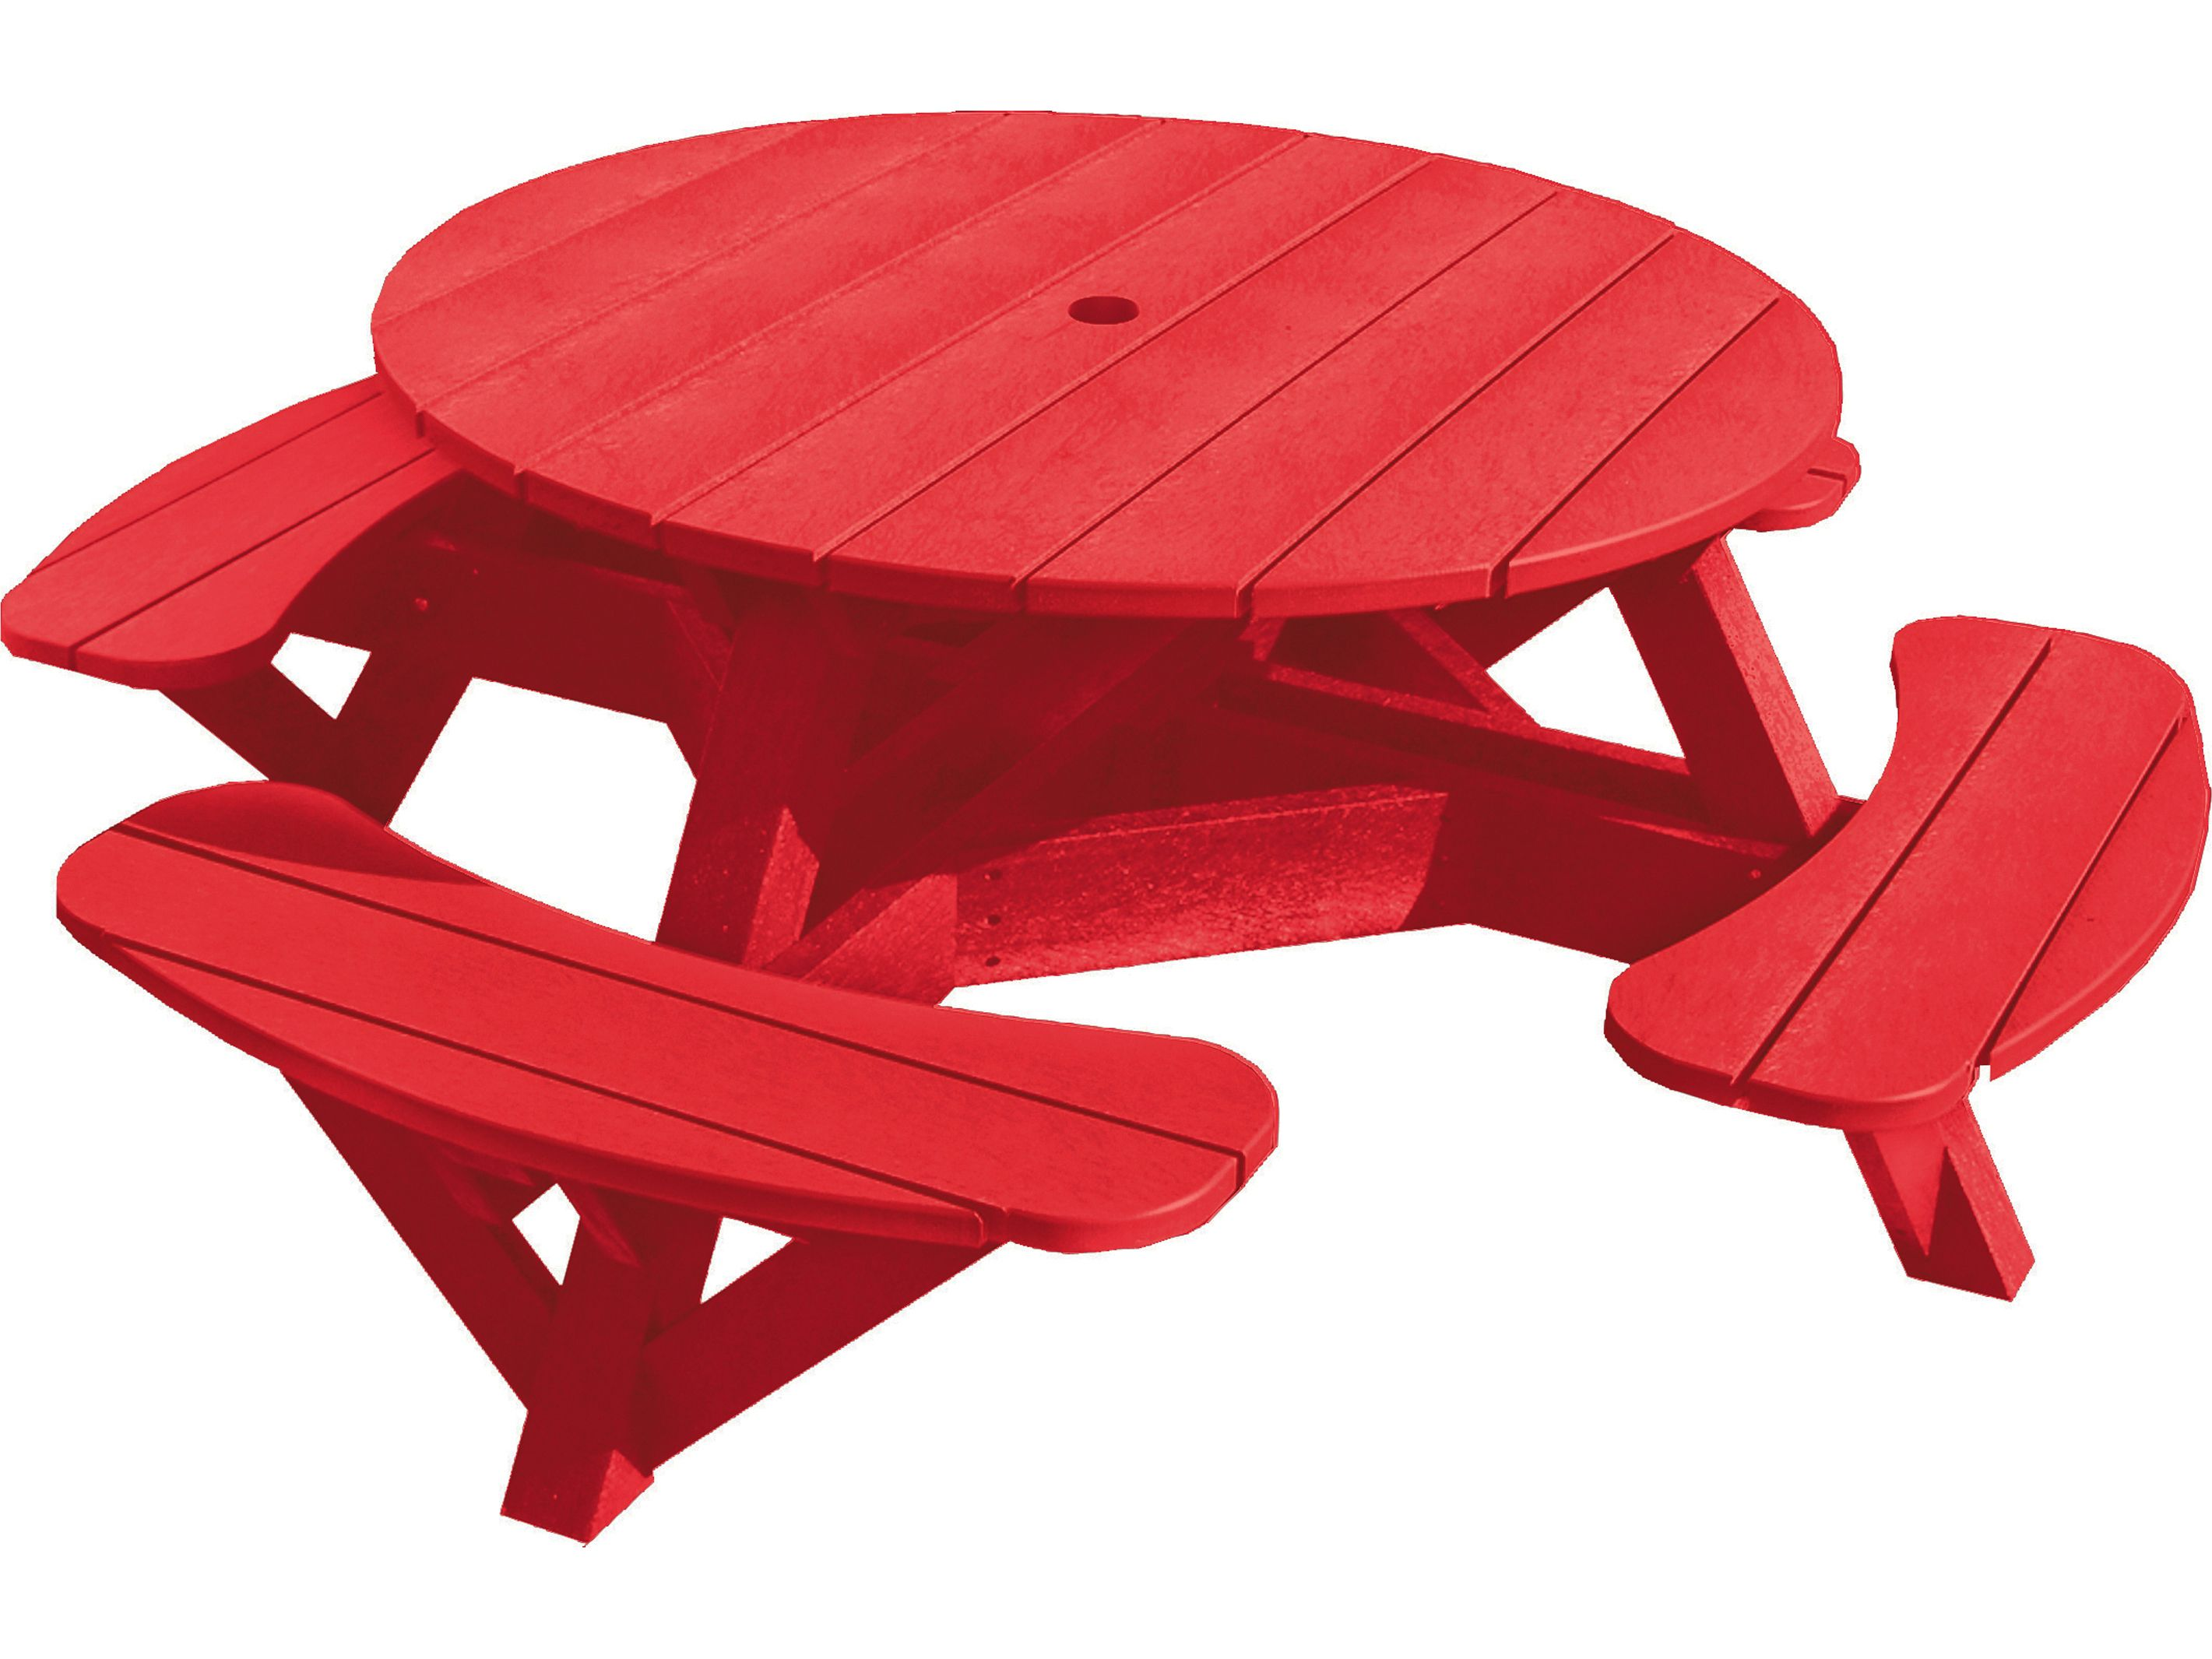 Garden And Patio Small Round Red Recycled Plastic Picnic Table With Swing Out Bench For Children Ideas